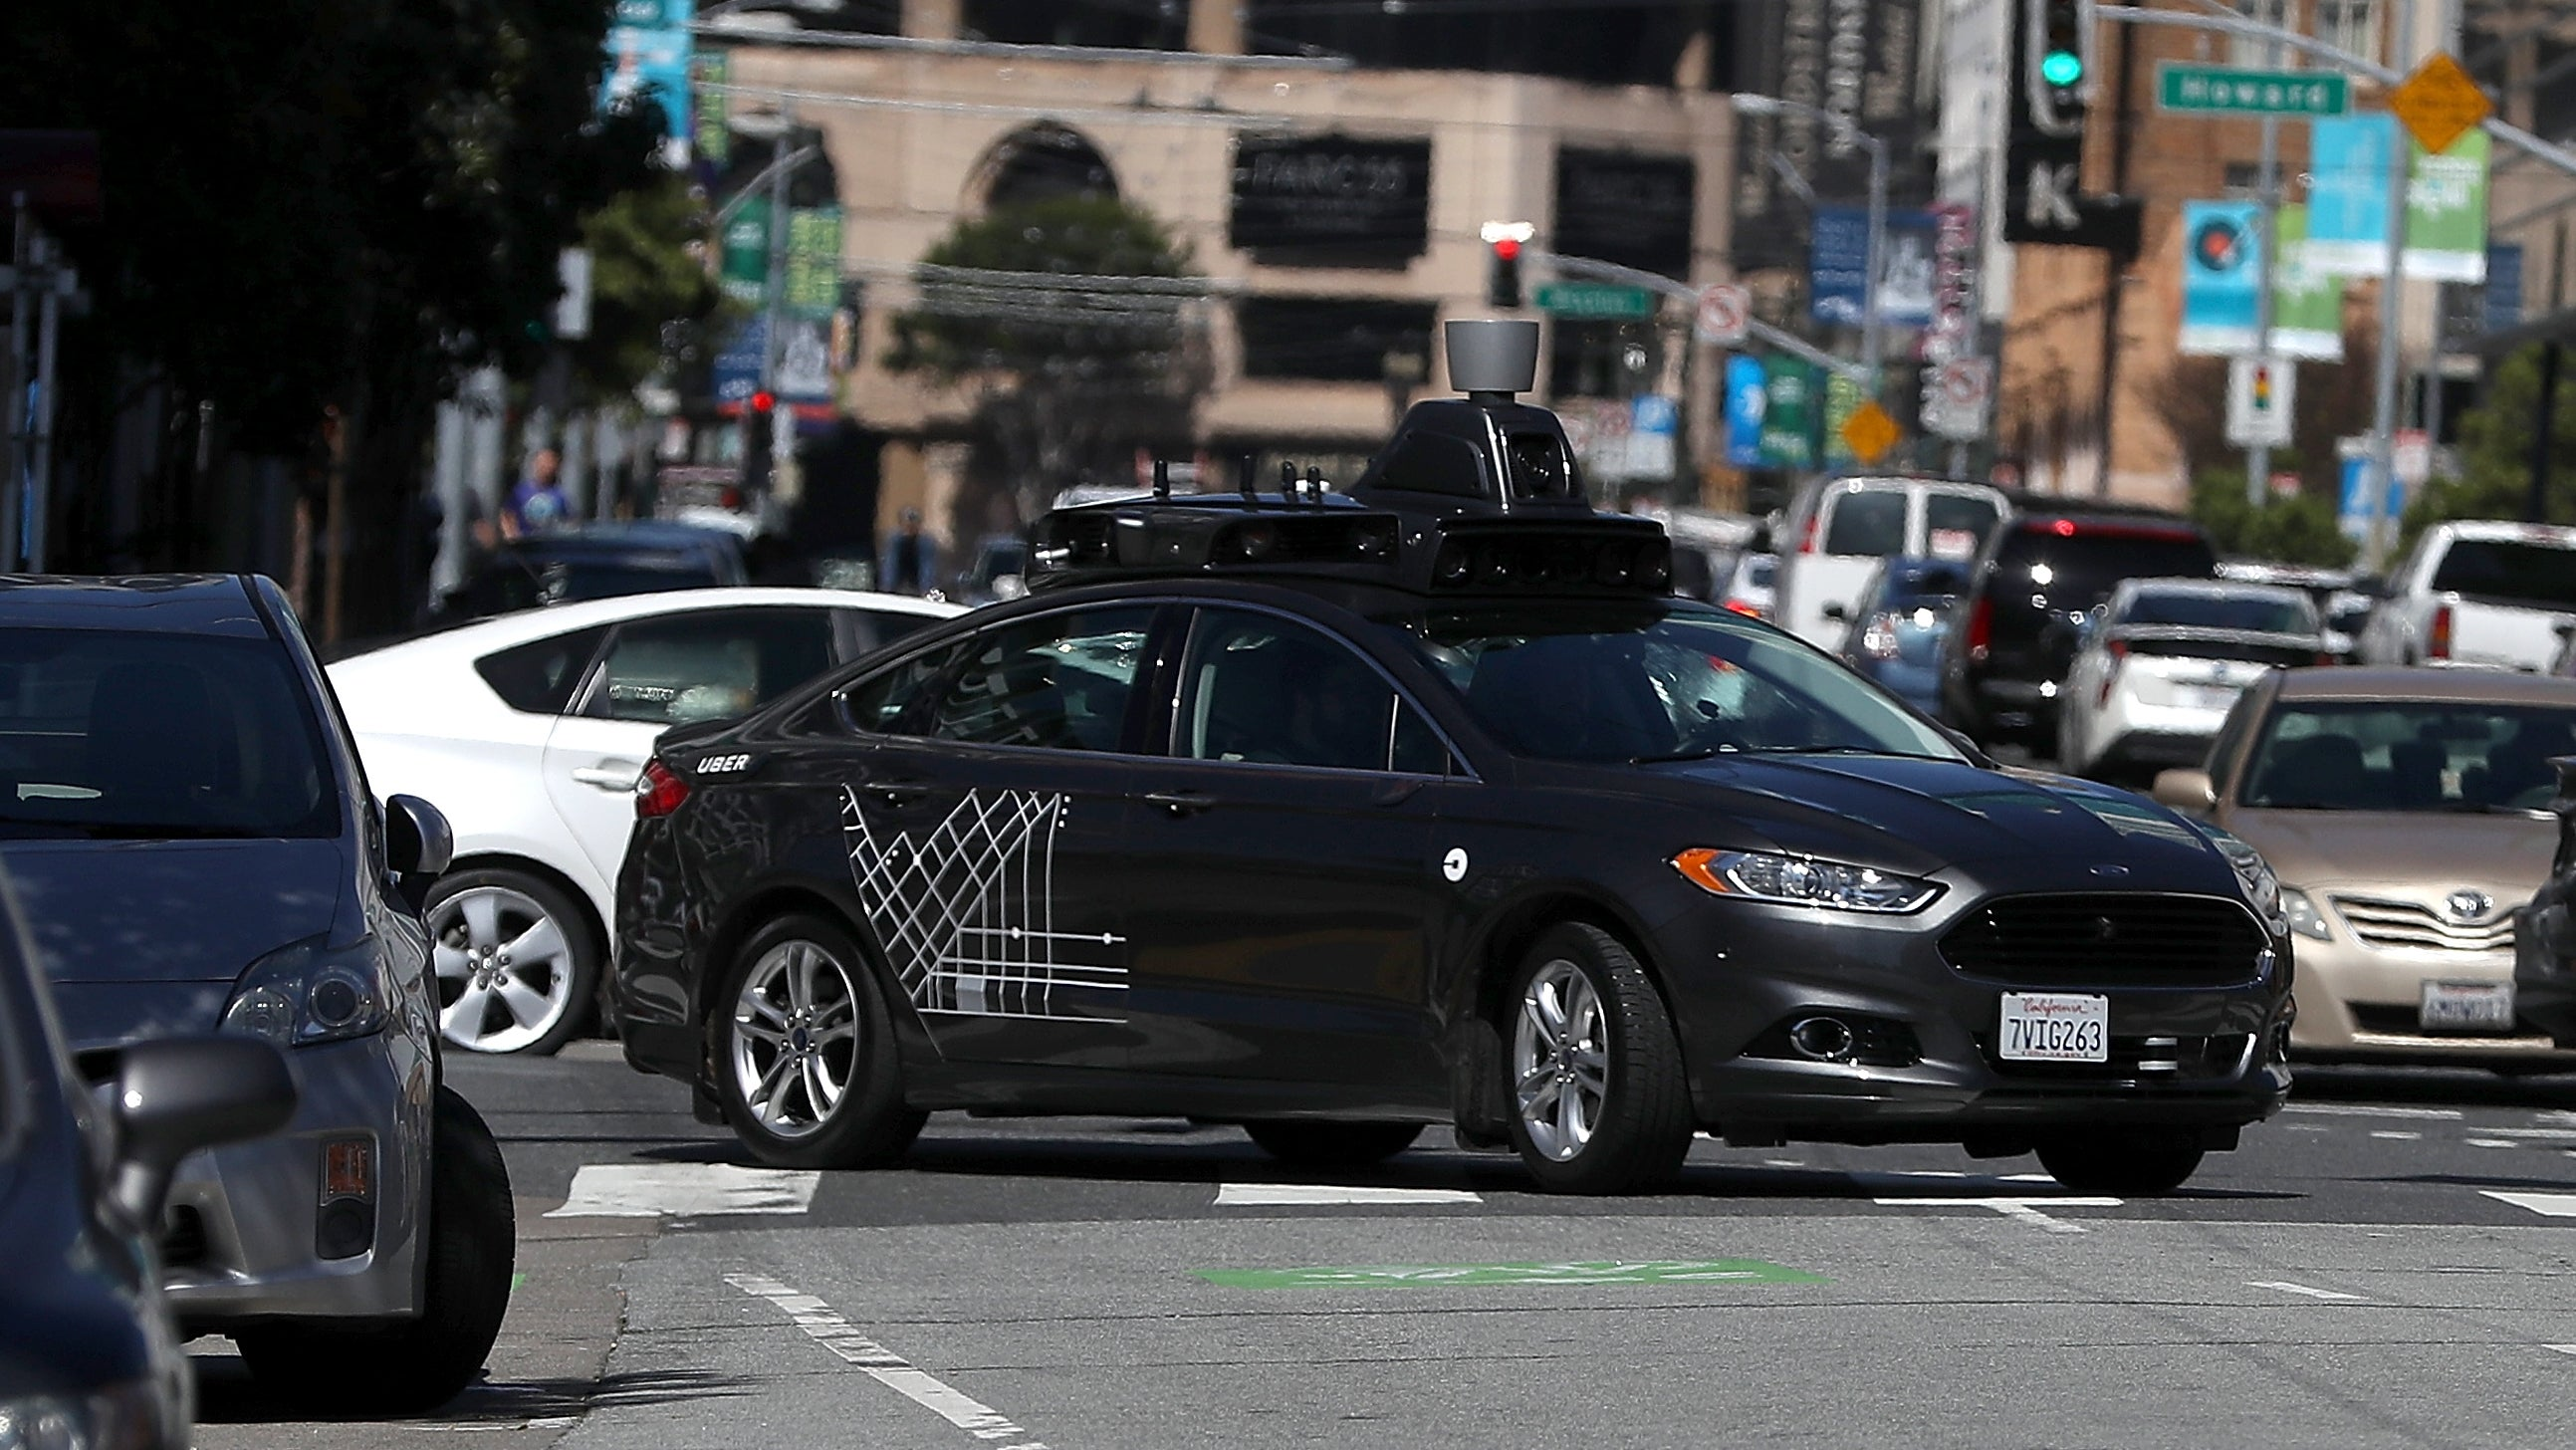 Senate Panel Approves Legislation That Would Put A Hell Of A Lot More Self-Driving Cars On US Roads